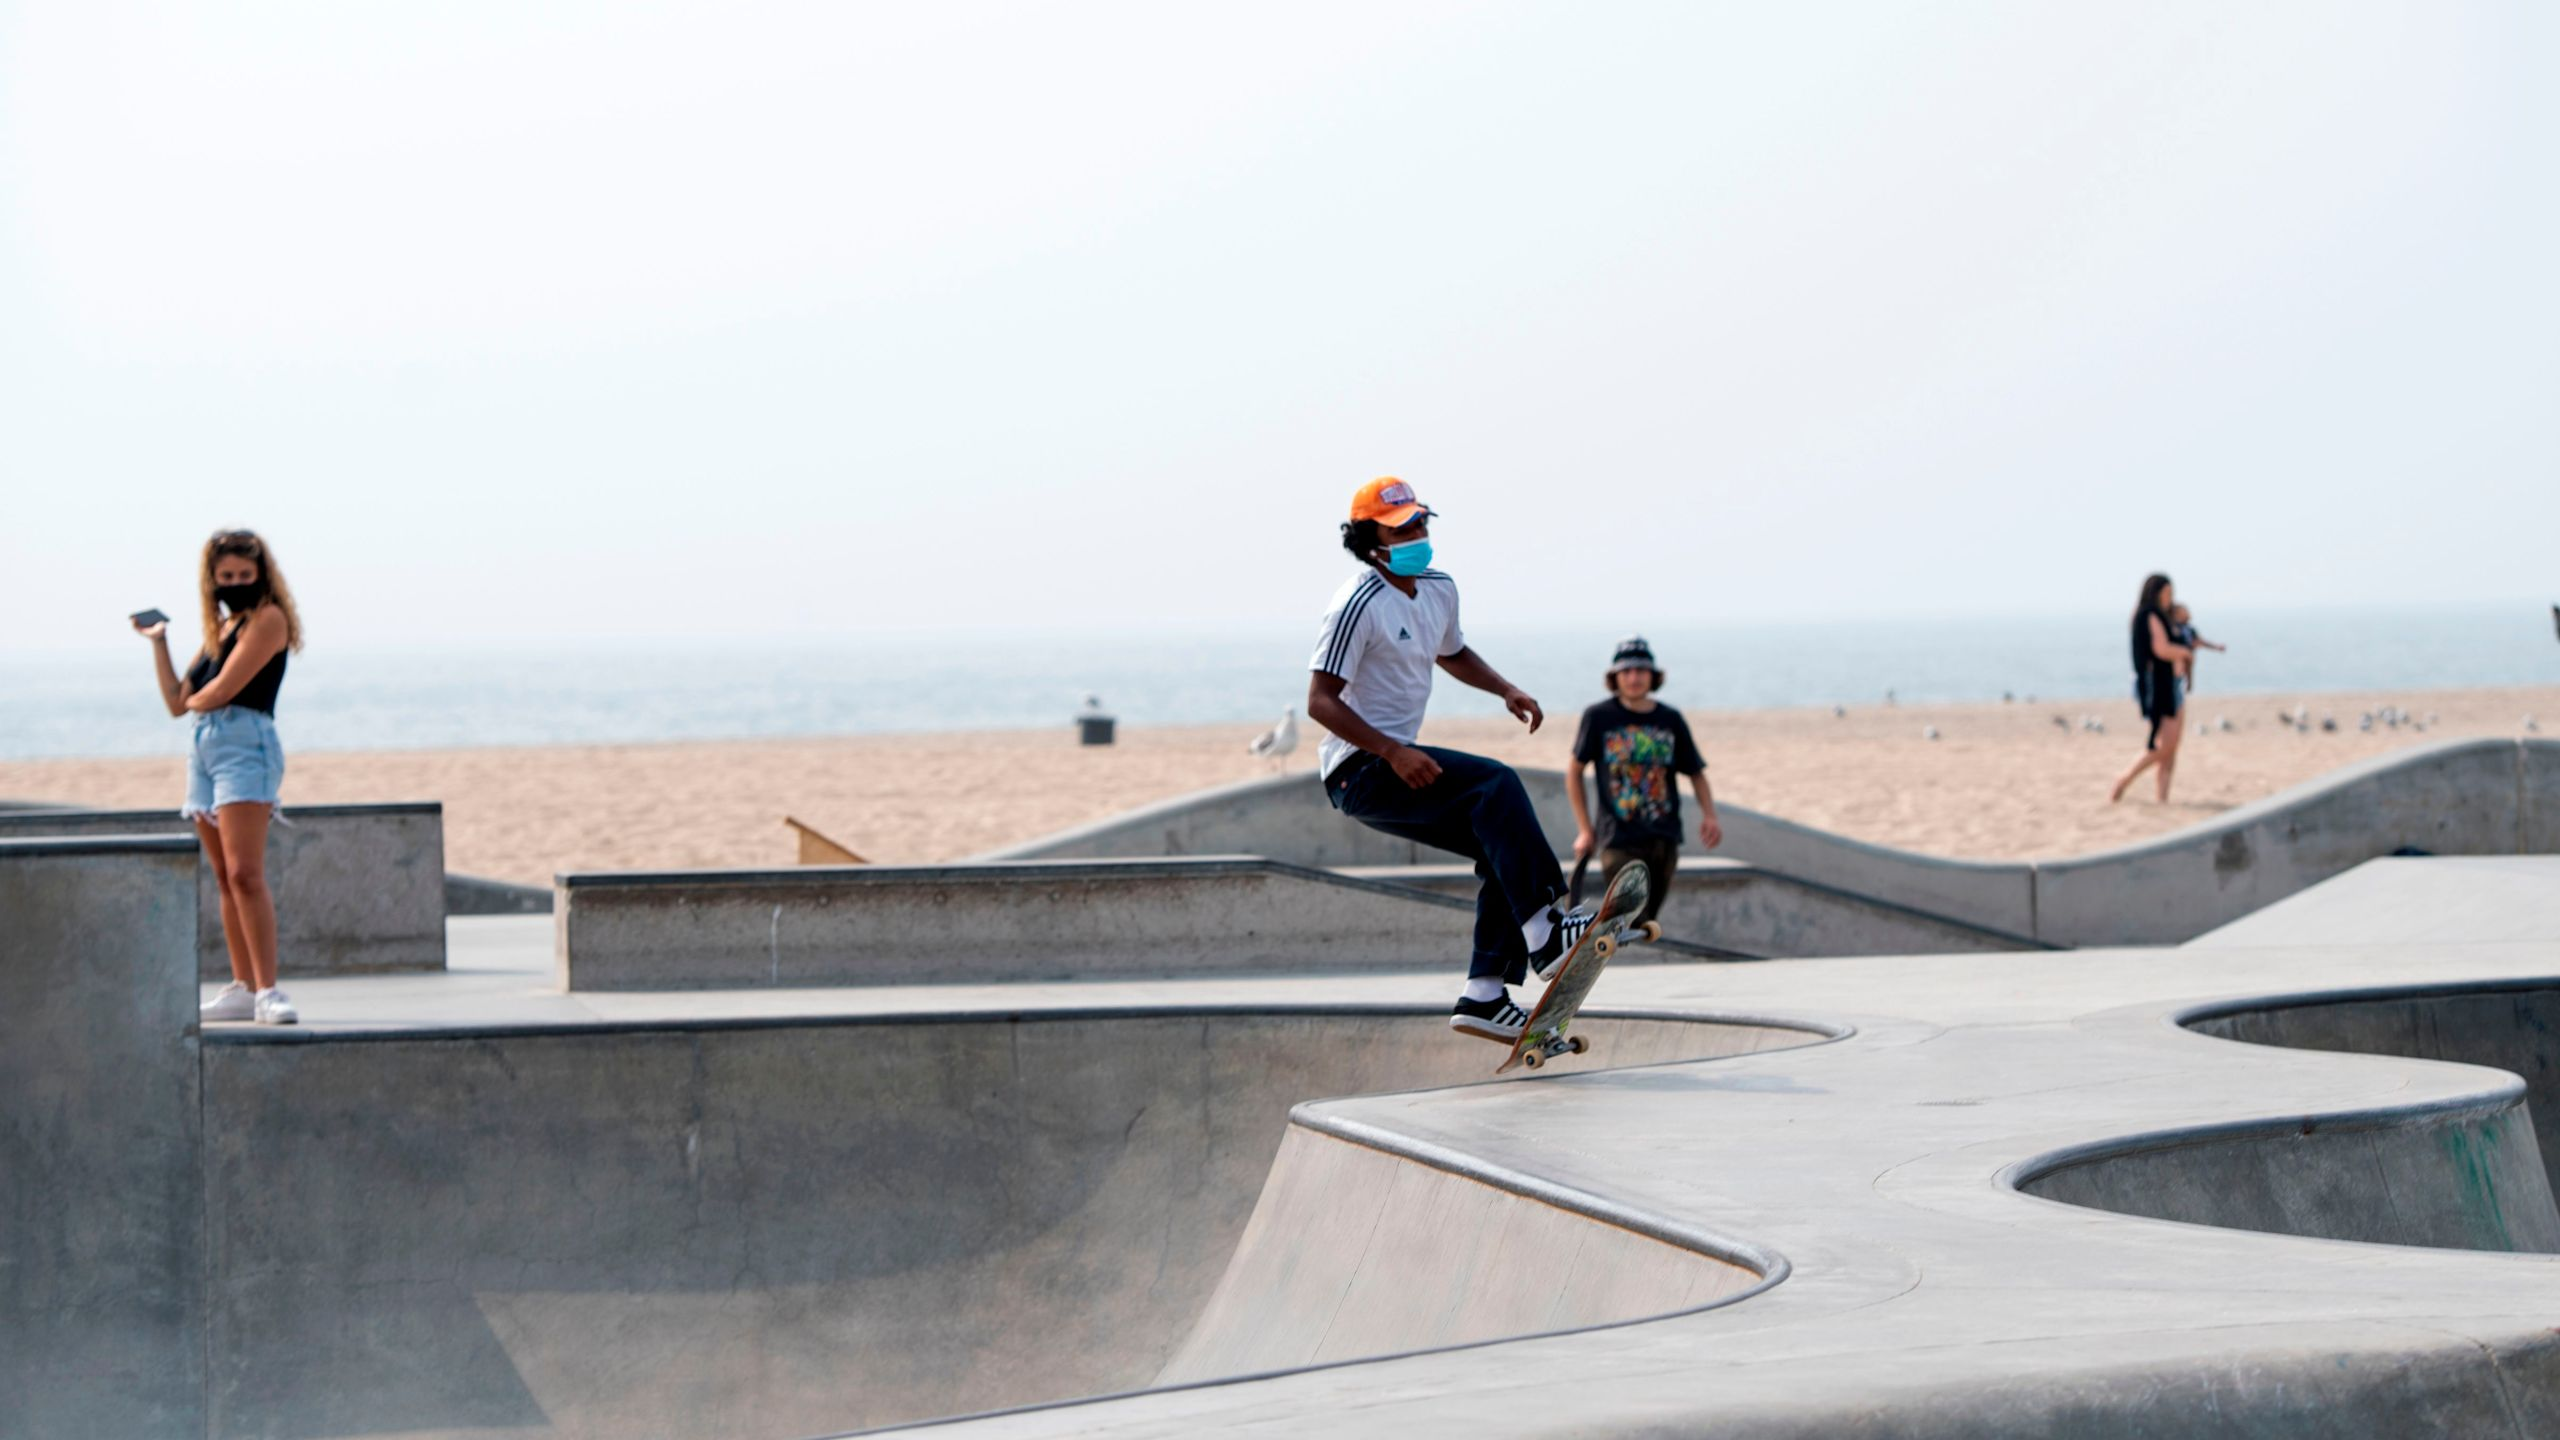 A man wearing a face mask skateboards at a skate park in Venice Beach on Sept. 15, 2020. (VALERIE MACON/AFP via Getty Images)